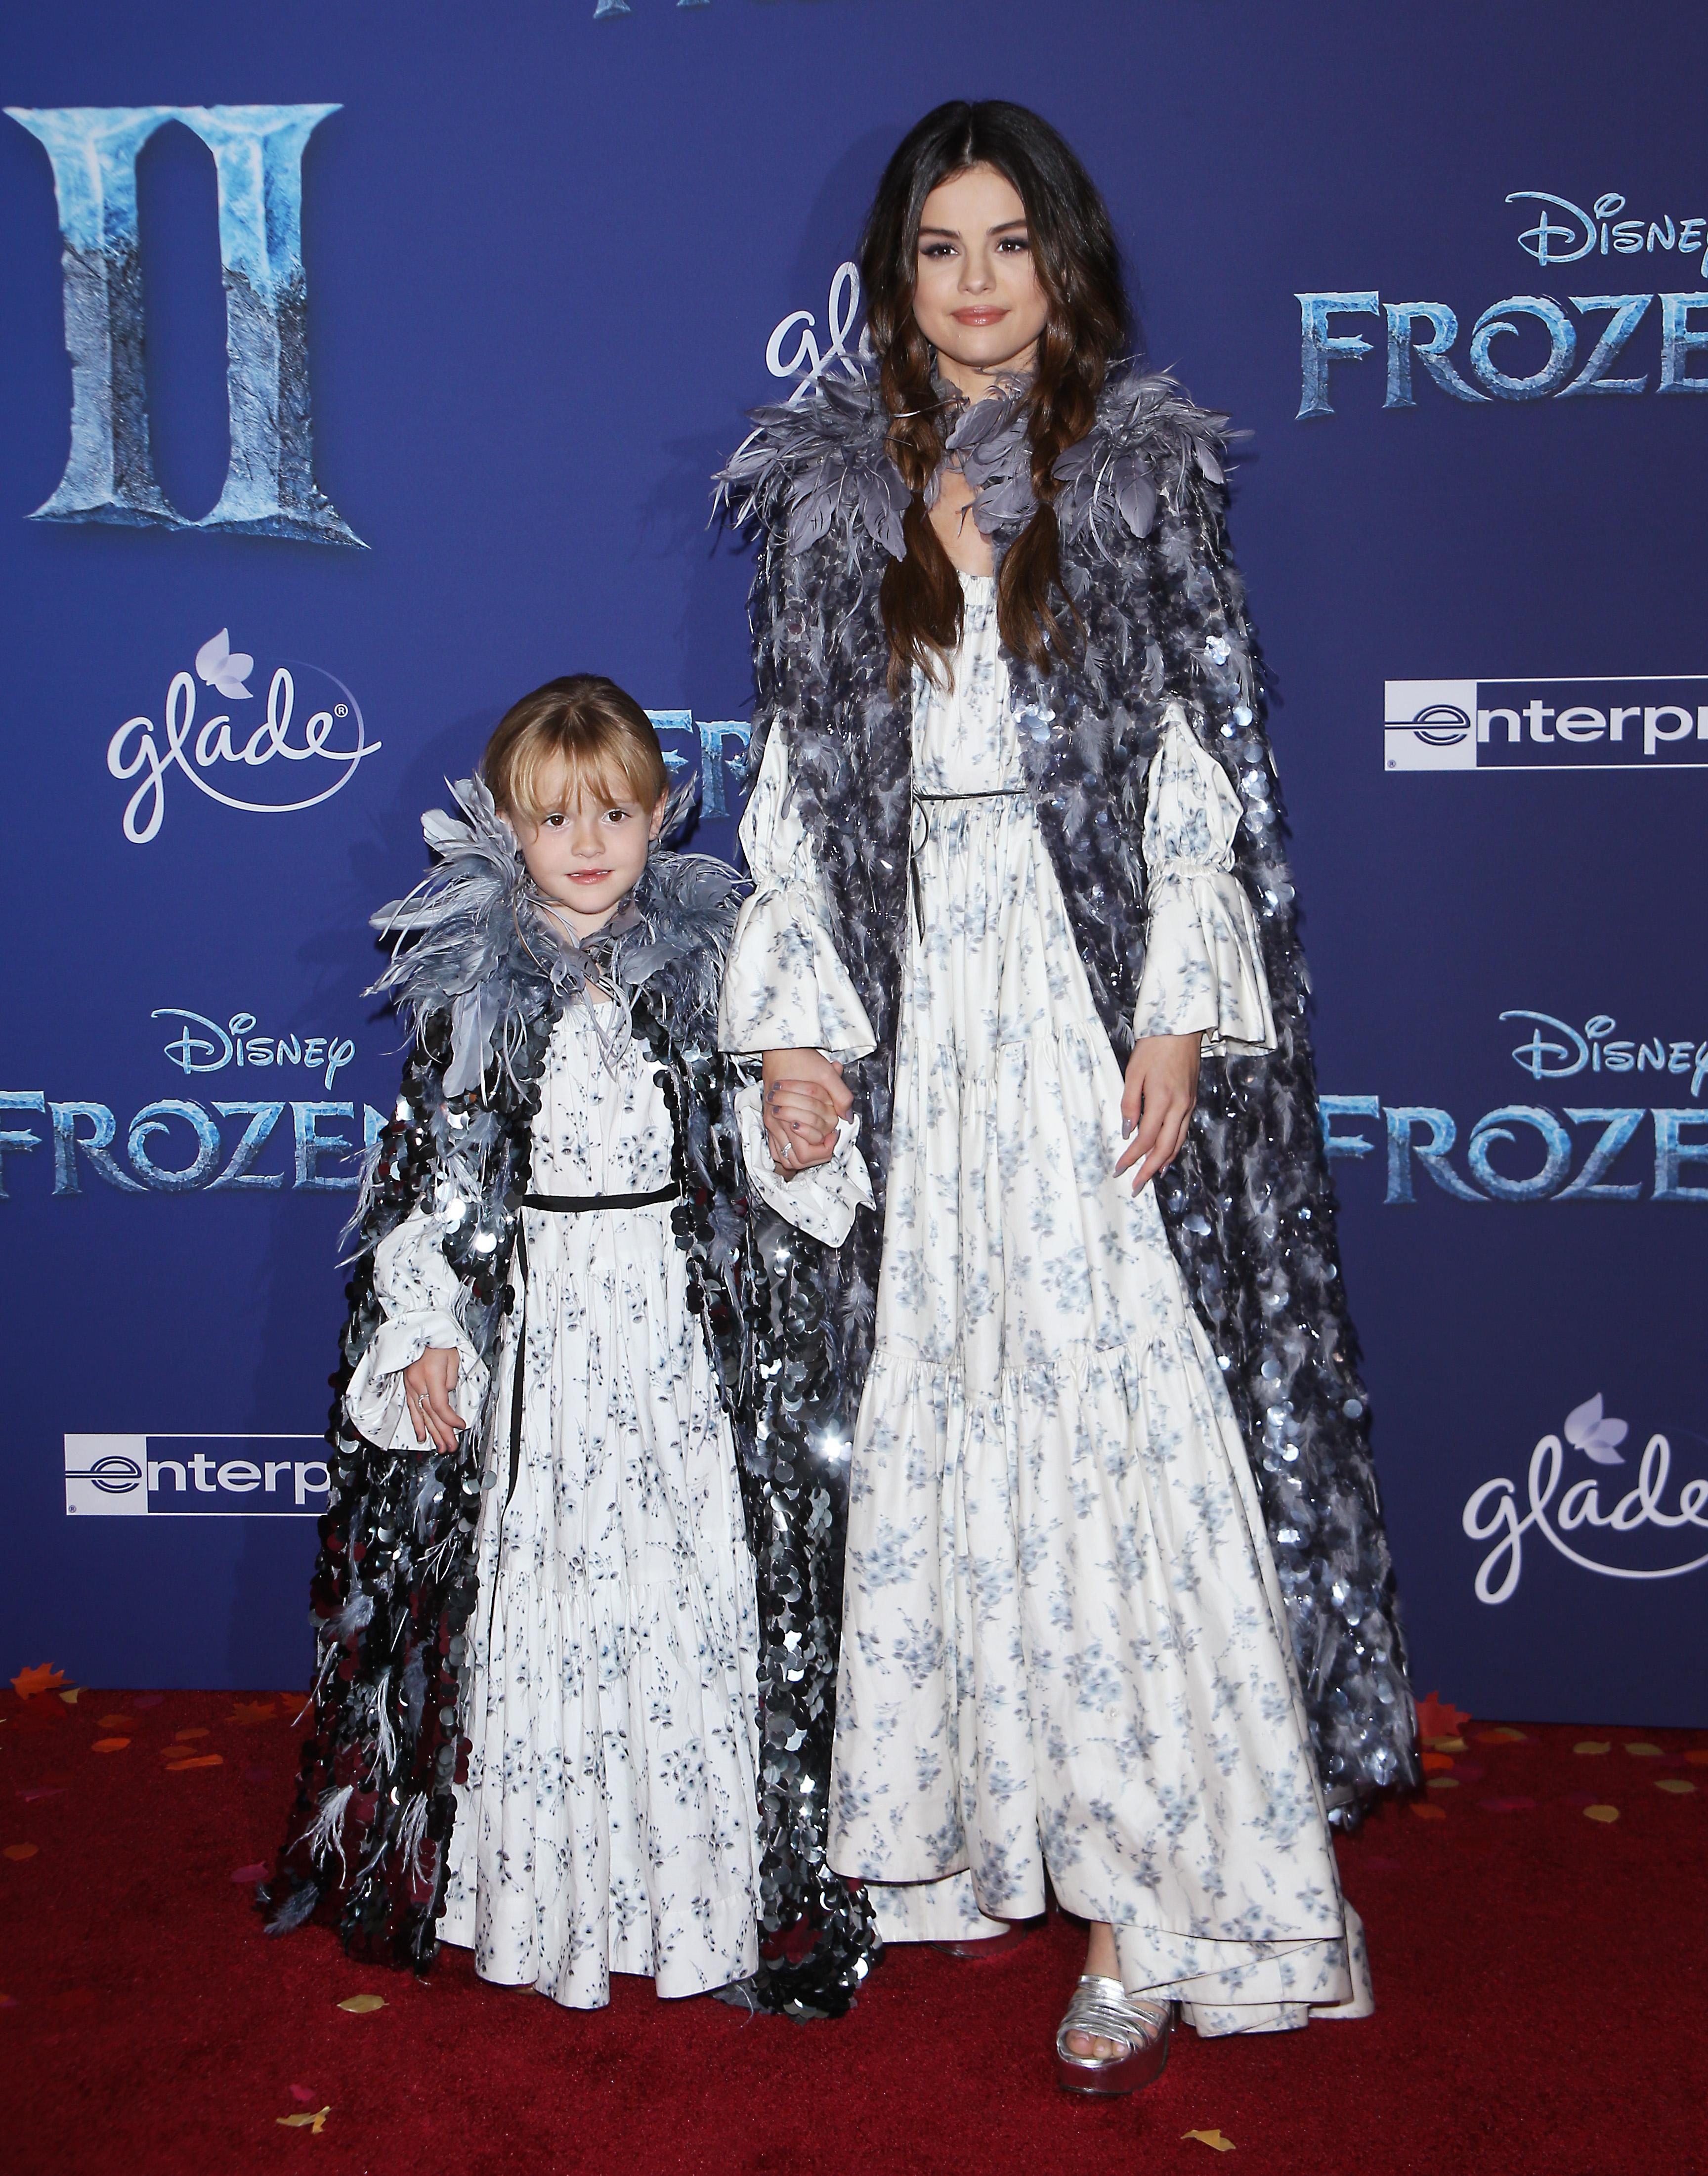 "HOLLYWOOD, CALIFORNIA - NOVEMBER 07: Selena Gomez and her little sister Grace Teefey attend the world premiere of Disney's ""Frozen 2"" held at Dolby Theatre on November 07, 2019 in Hollywood, California. (Photo by Michael Tran/FilmMagic)"